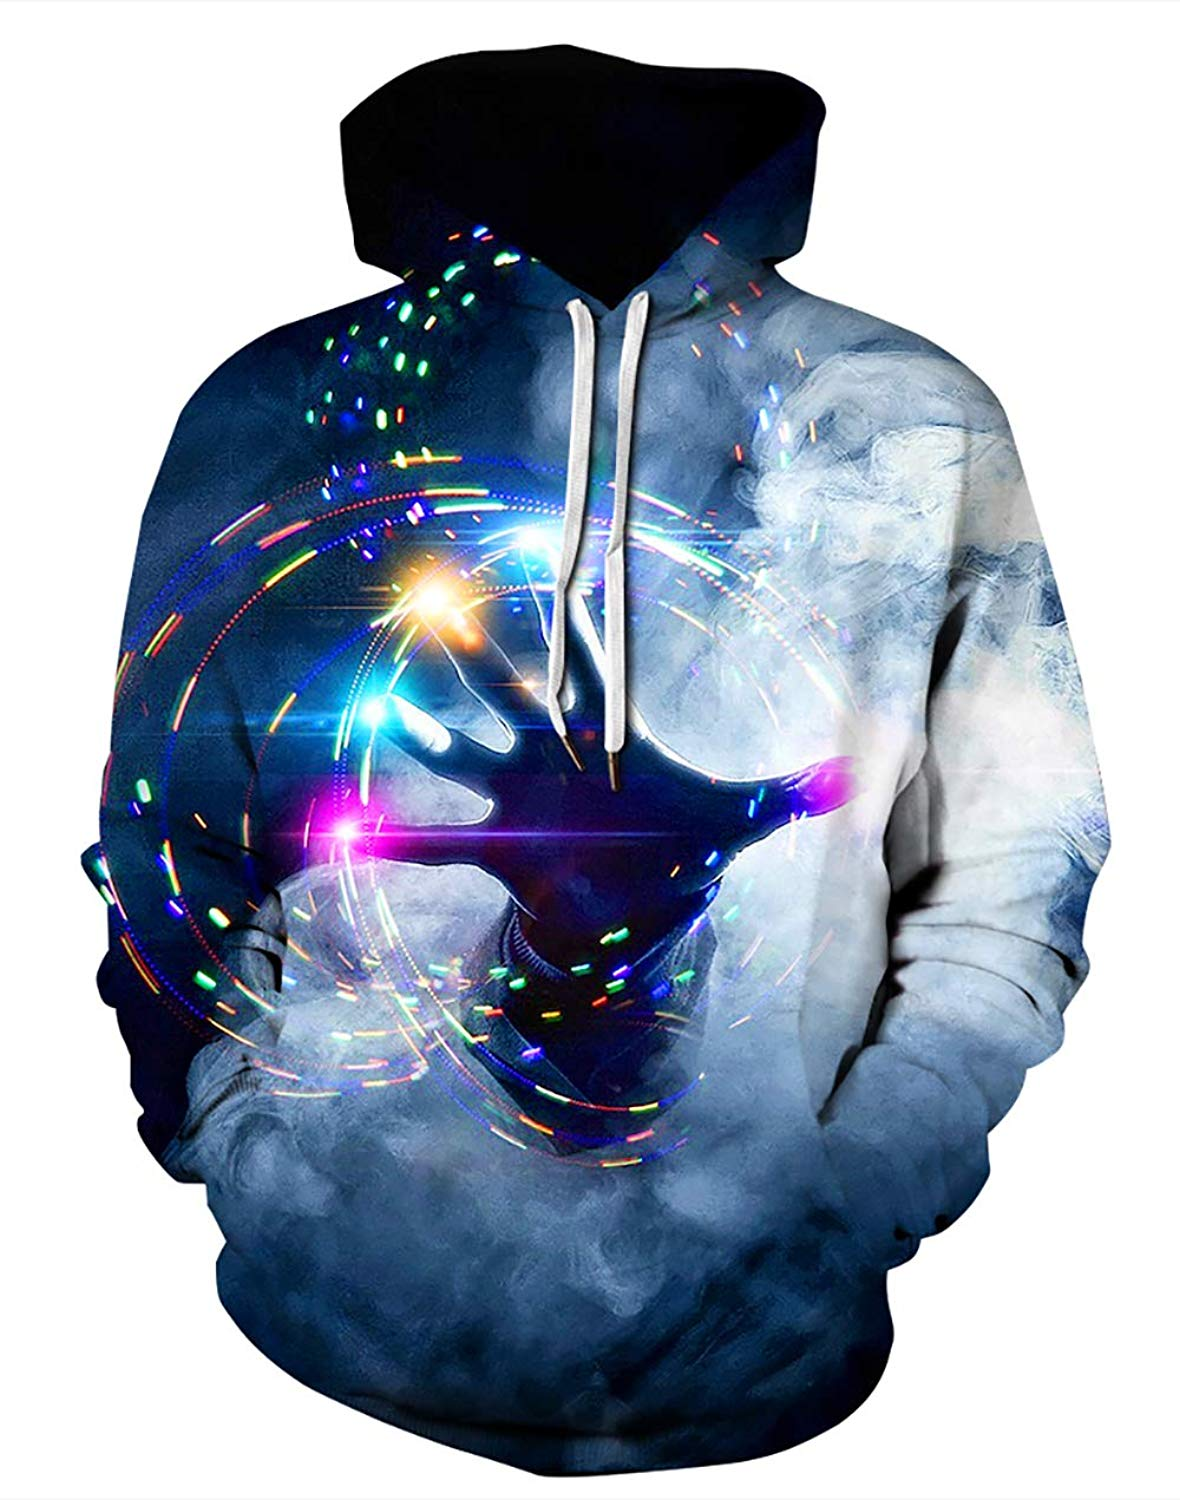 60aff9df54f8 Get Quotations · Zegoo Unisex Mens Hoodies Sweatshirt 3D Print Colorful  Galaxy Pullover Halloween Costume